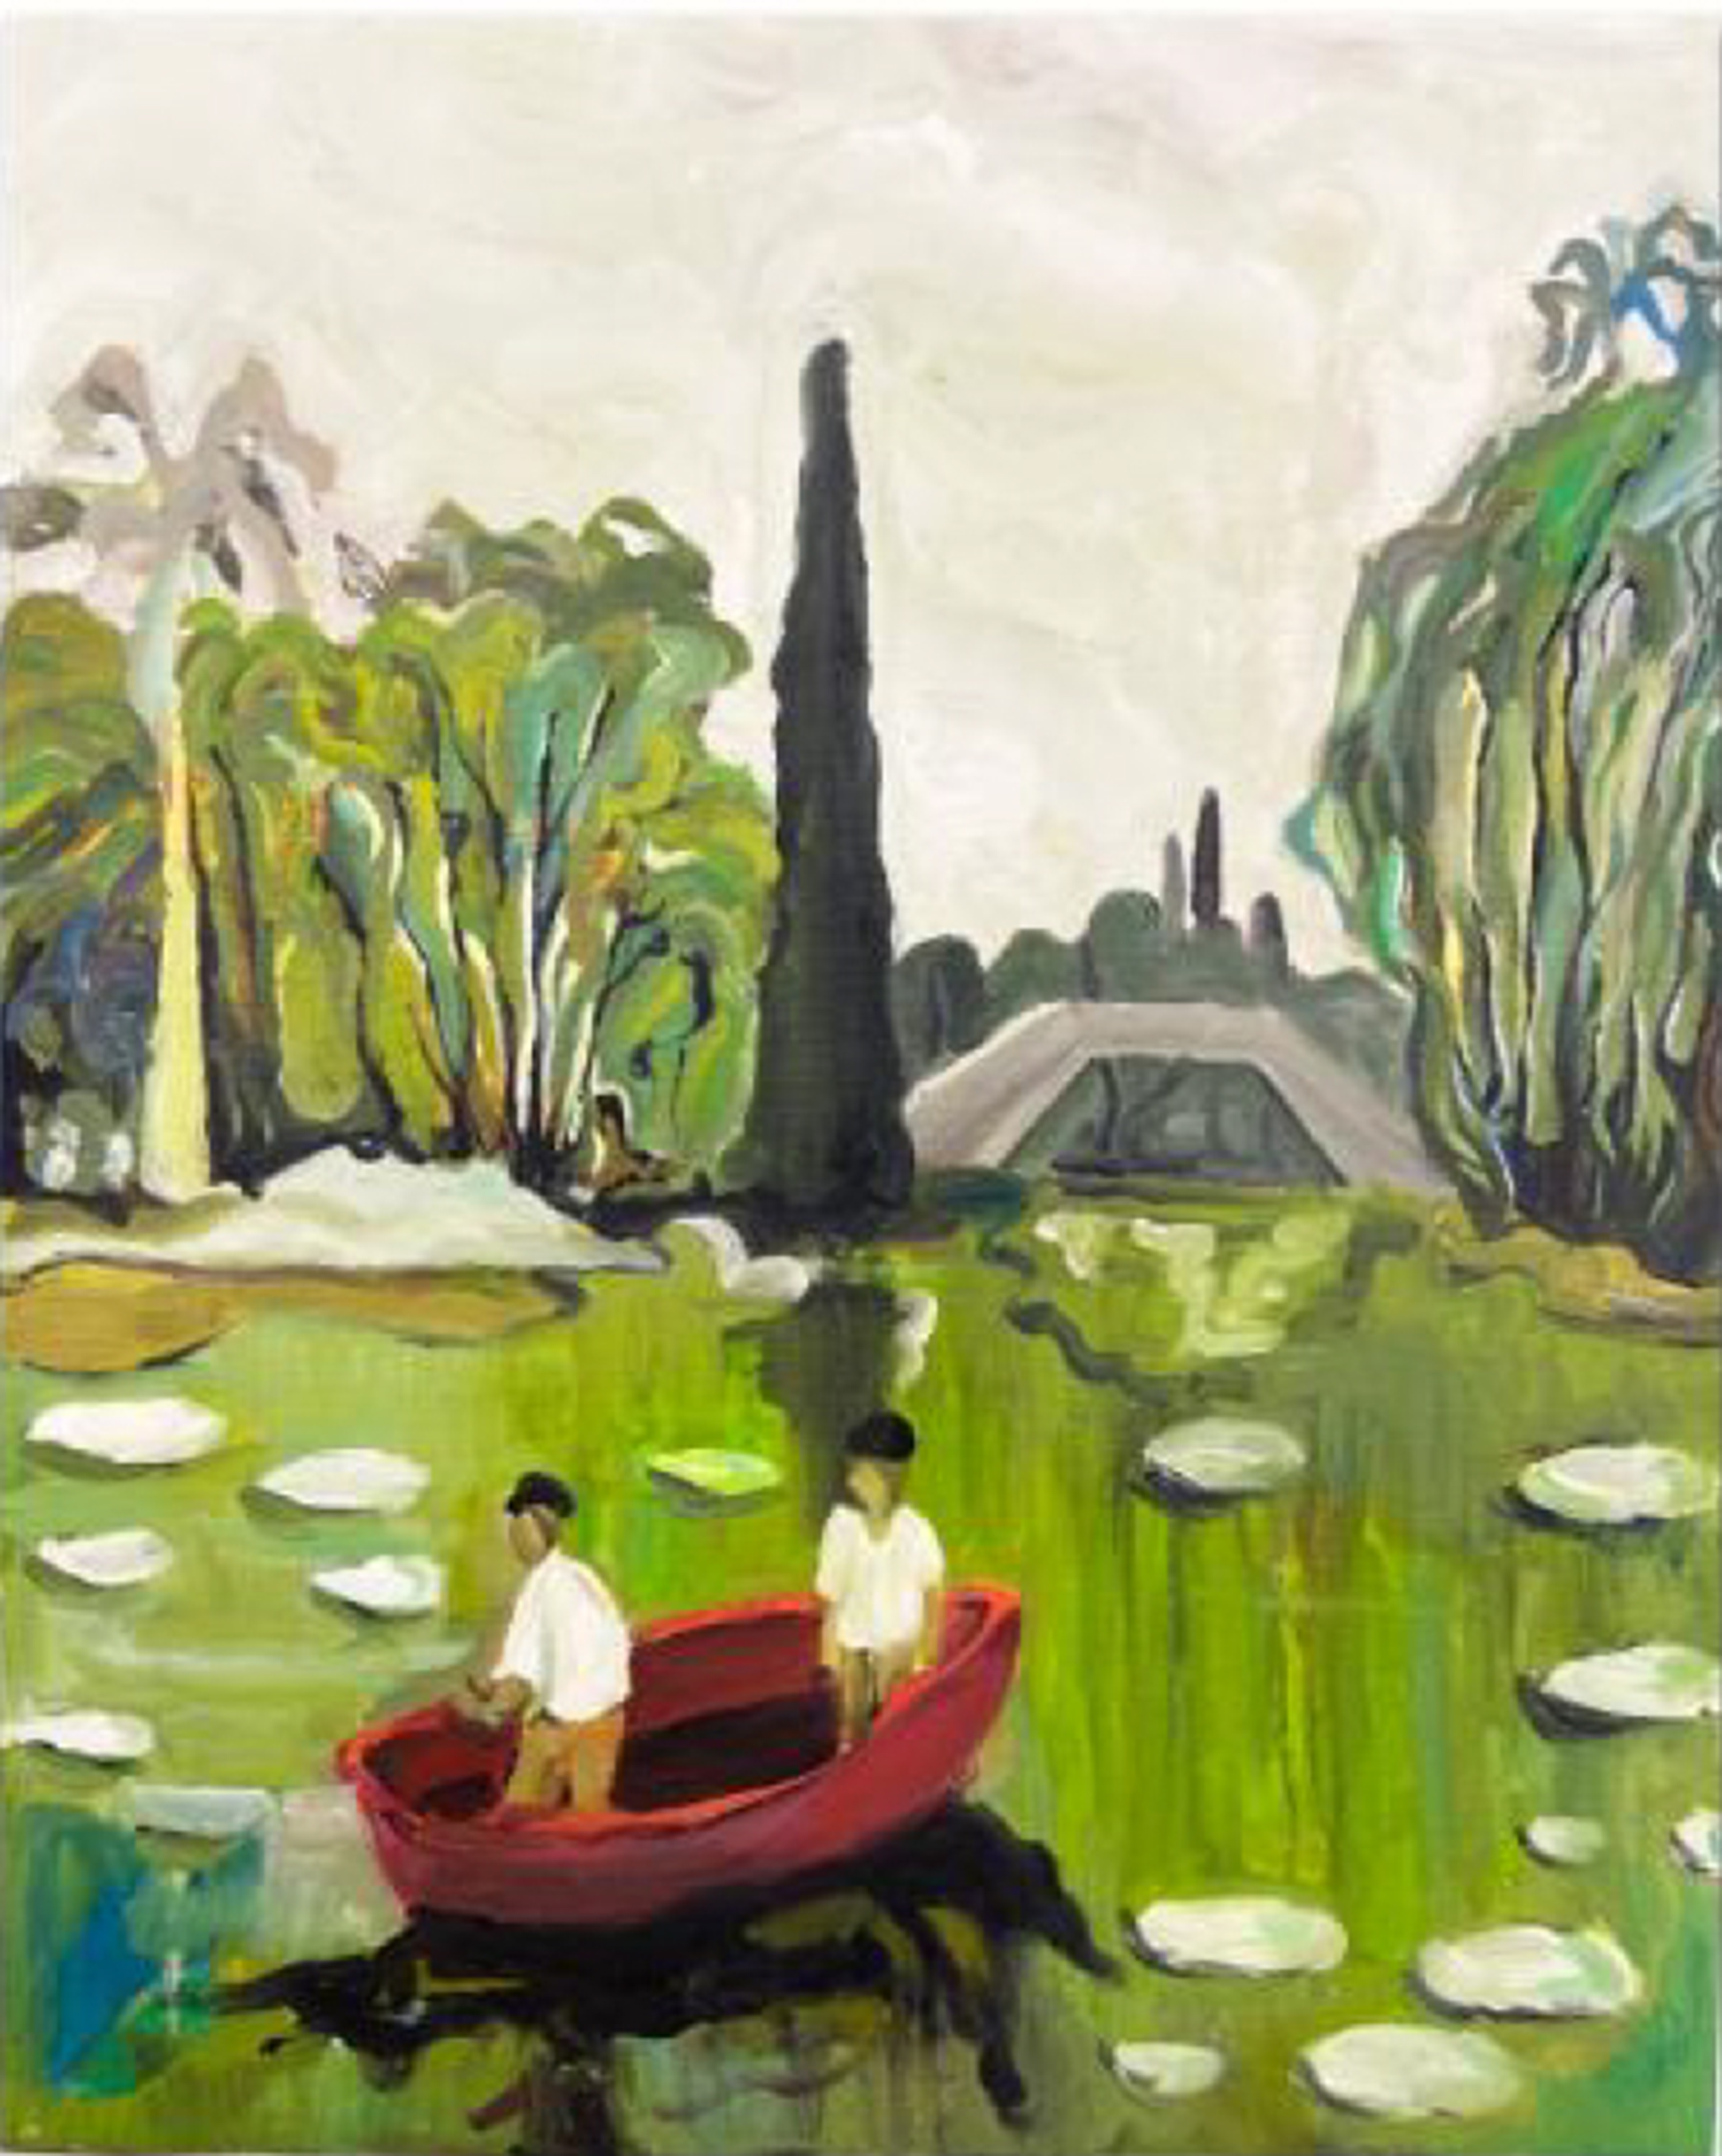 Painting of two people in a small boat on a pond covered in lily pads and the water reflecting the greenery around it